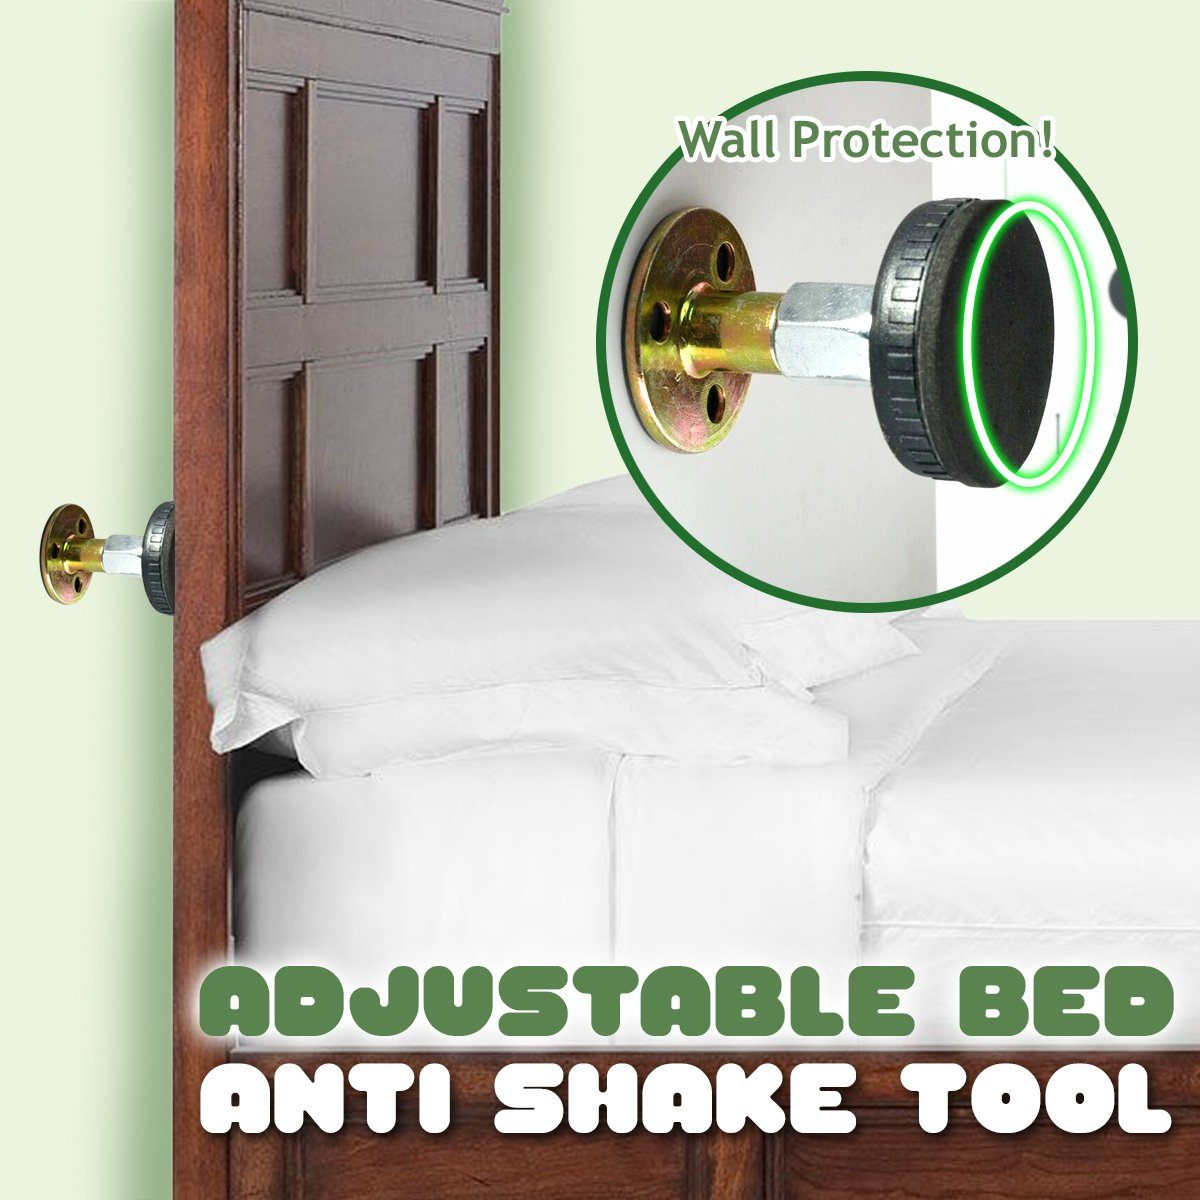 Adjustable Bed Anti Shake Tool